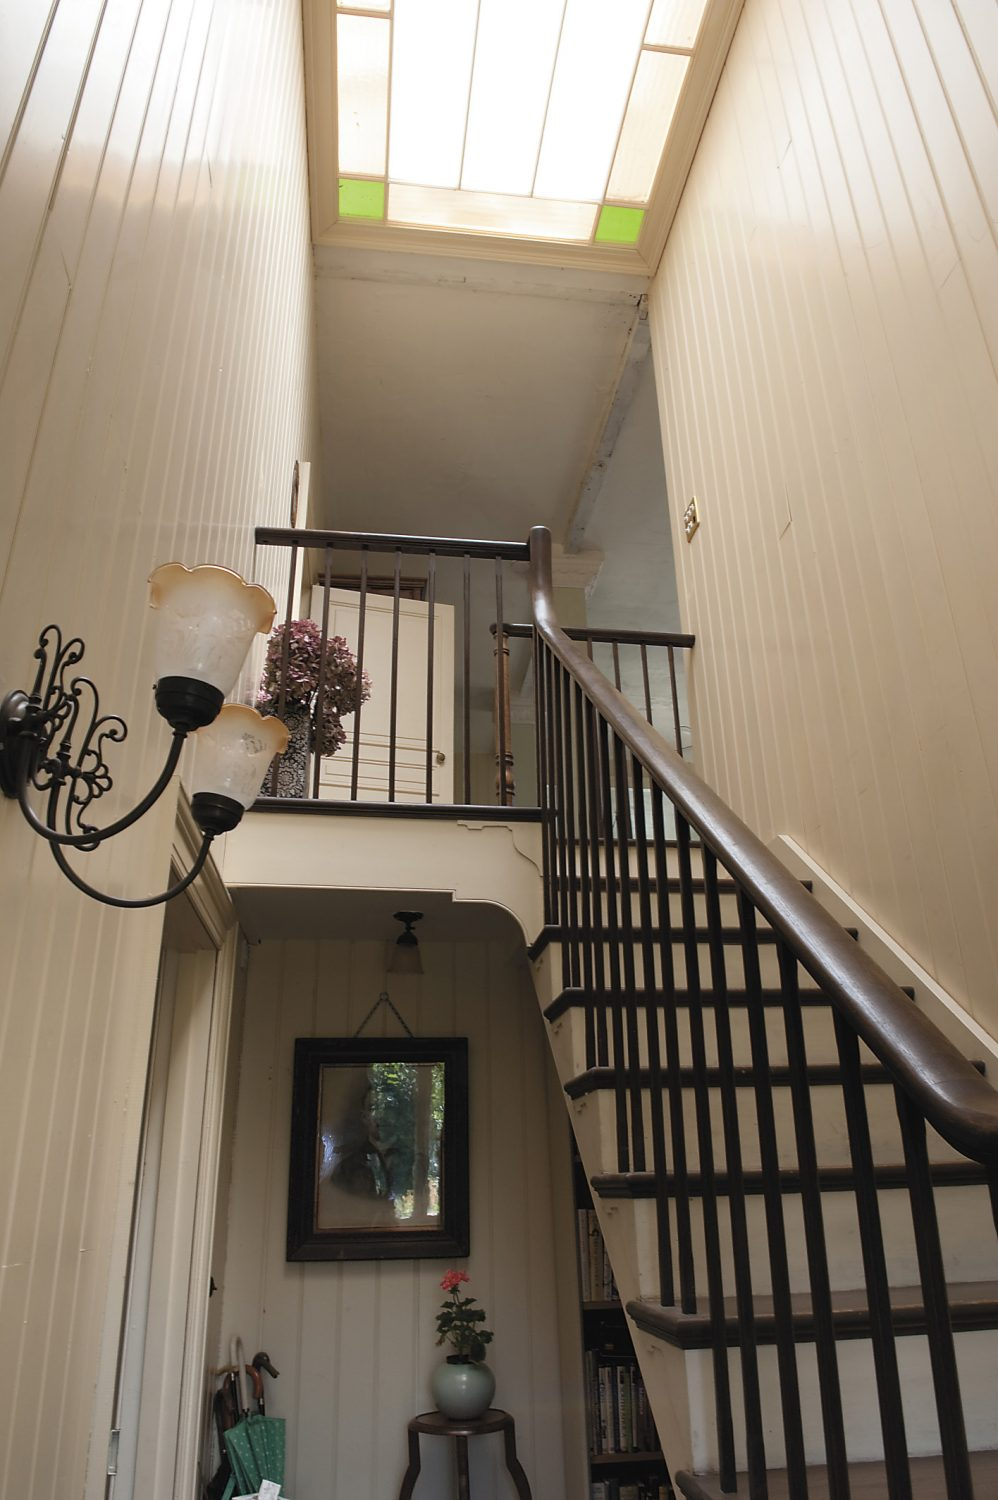 Stroll into the cool hallway and upstairs beneath a stained-glass skylight – the house is built on a steep incline so the main living space is on the first floor – and you're no longer in America nor England but France